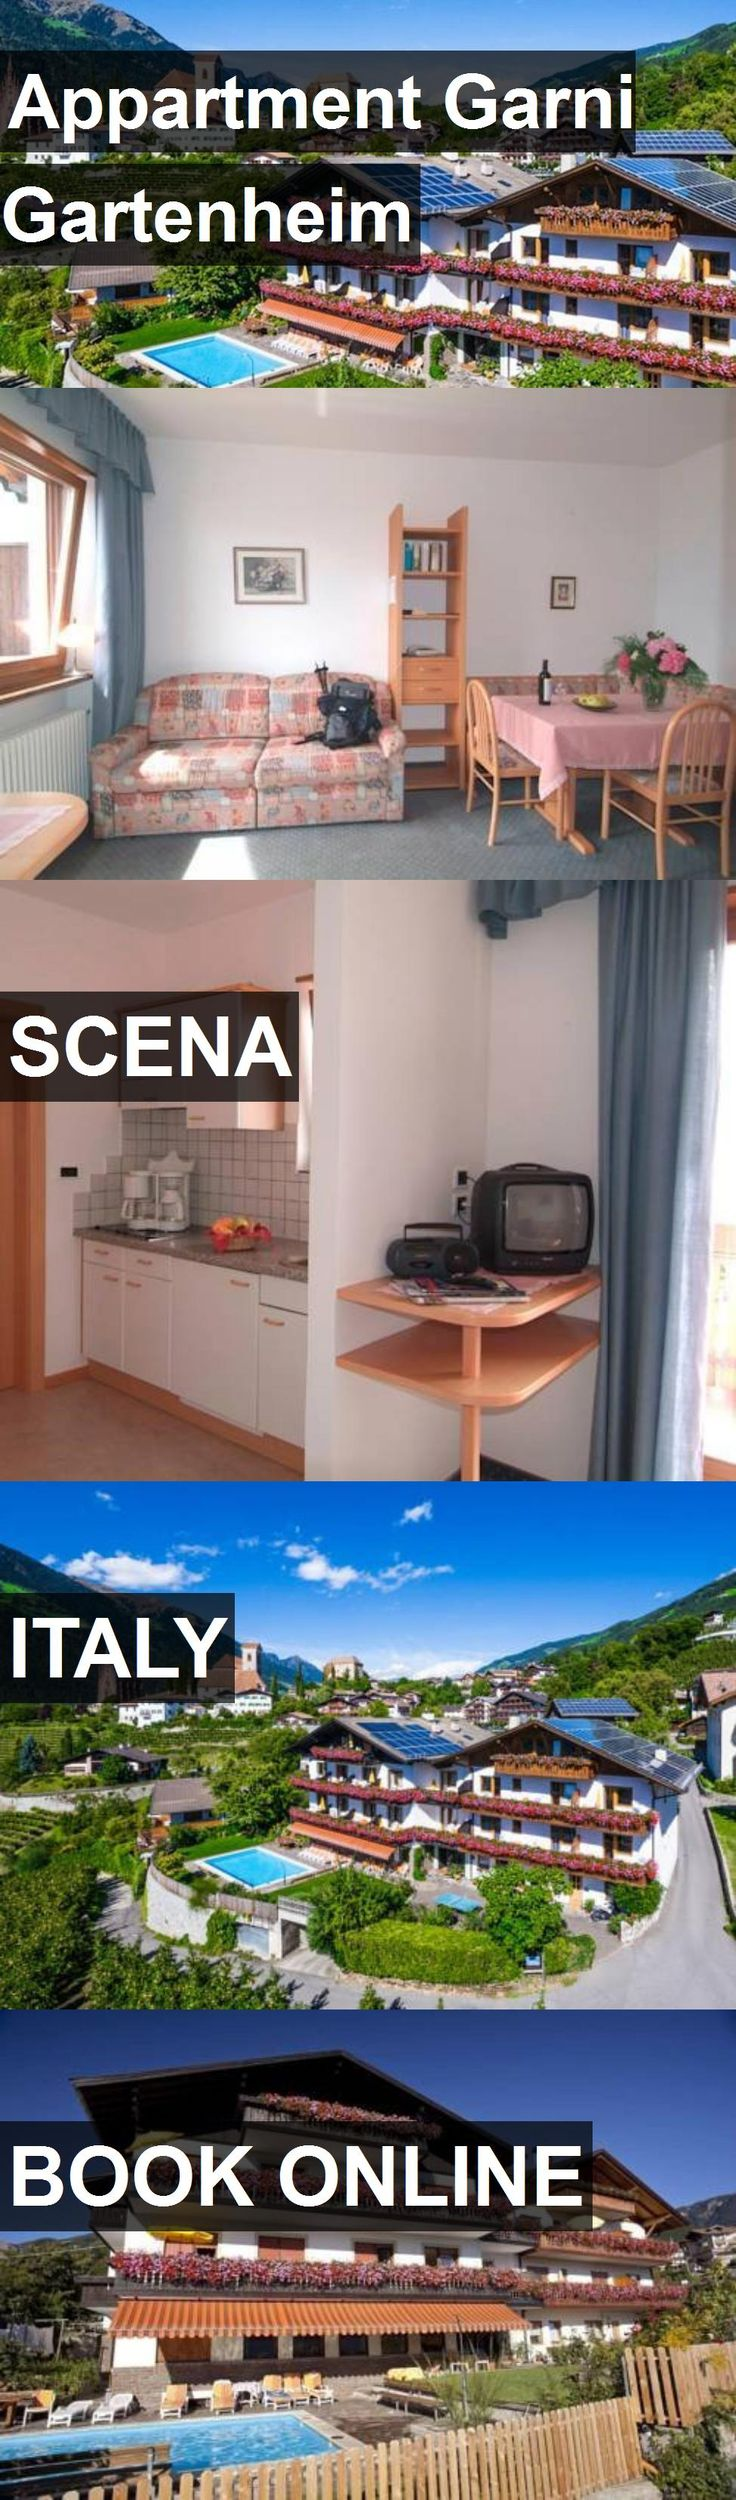 Hotel Appartment Garni Gartenheim in Scena, Italy. For more information, photos, reviews and best prices please follow the link. #Italy #Scena #travel #vacation #hotel